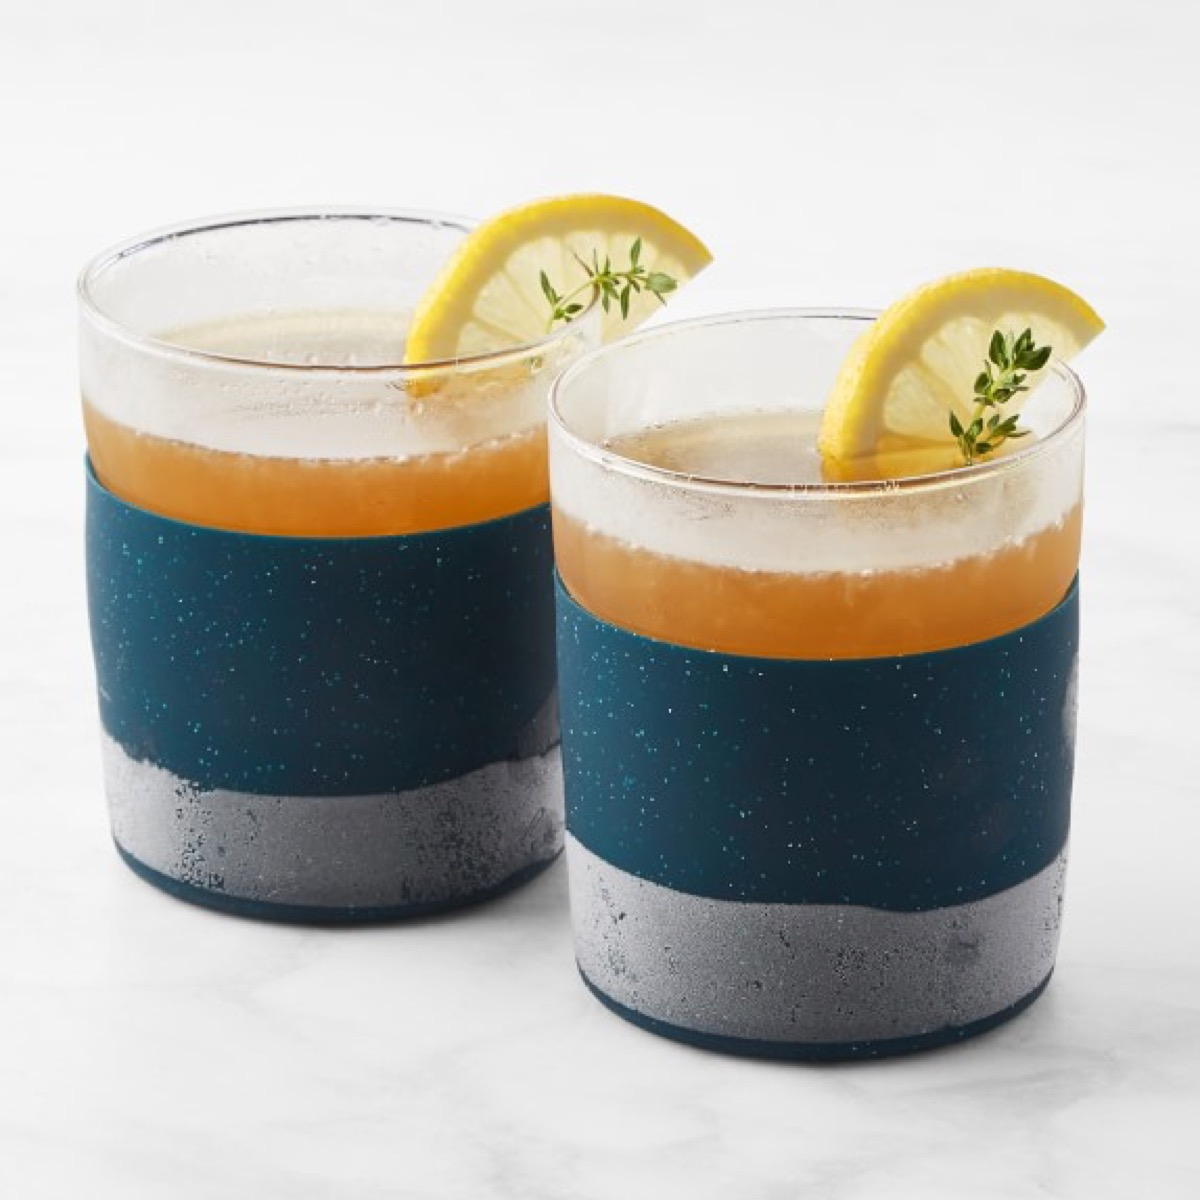 set of two colorblocked tumblers with drinks in them and lemon wedges on the edge